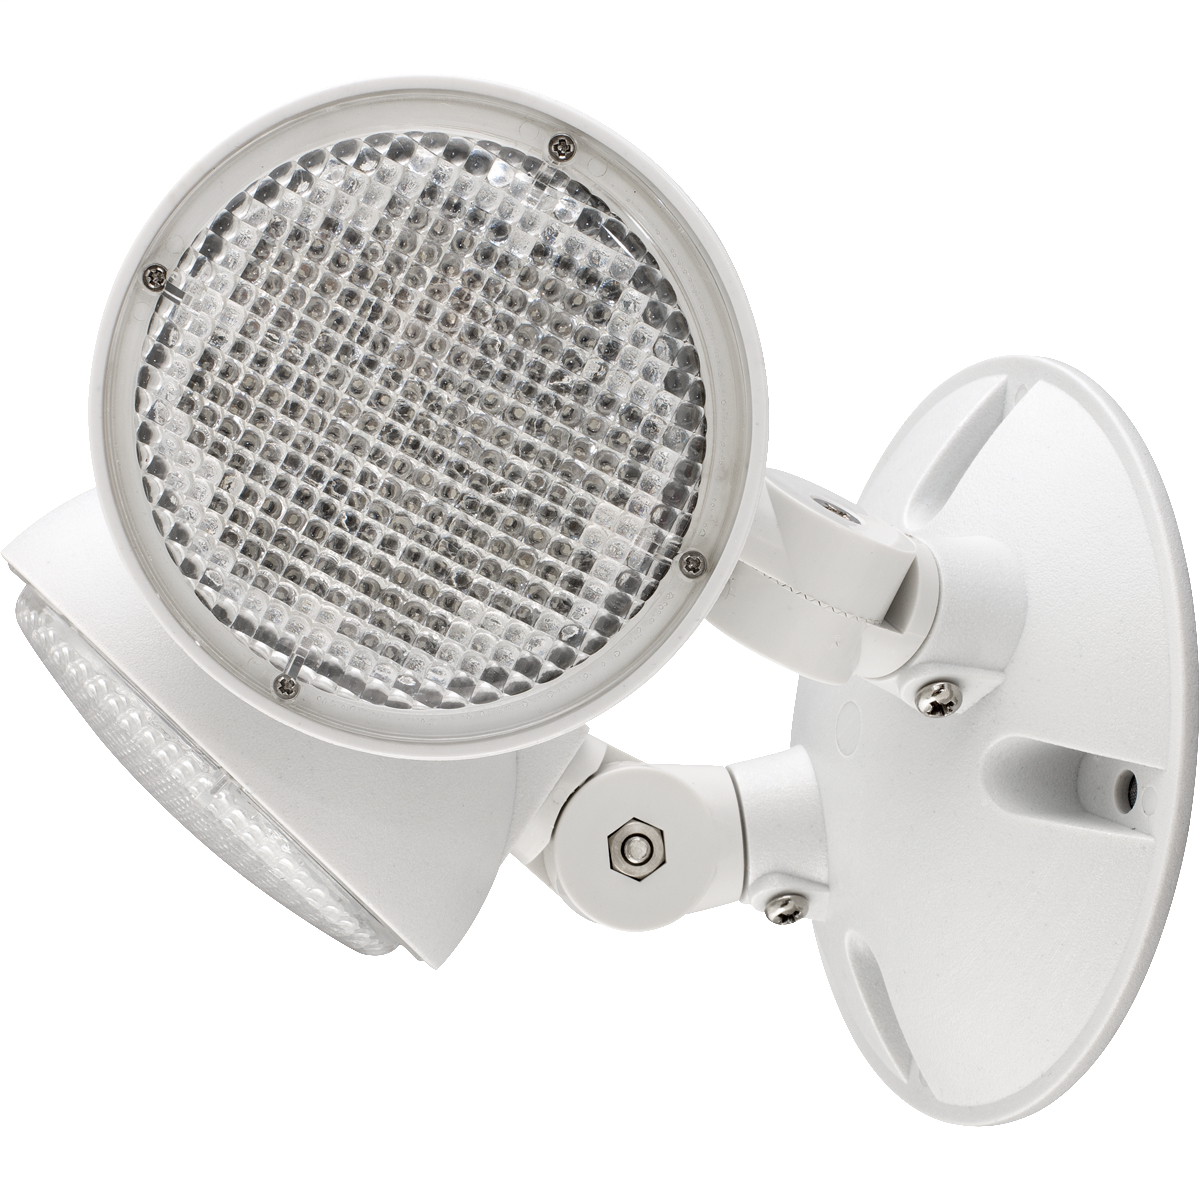 COMP CORS LED OUTDOOR SINGLE REMOTE HEAD